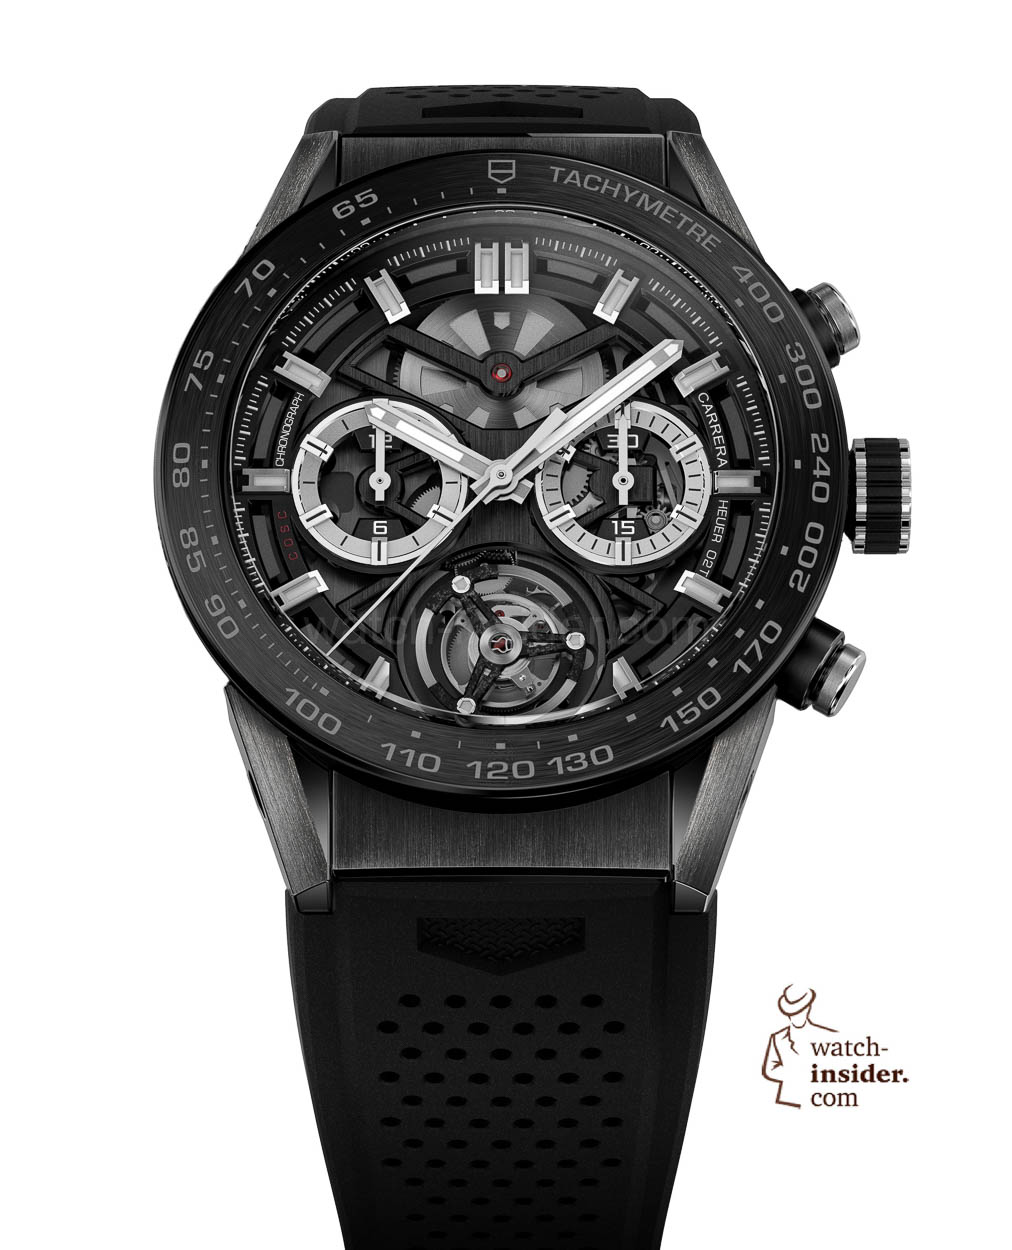 43313da875361 TAG Heuer CARRERA Heuer-02T COSC-certified automatic chronograph with  Tourbillon